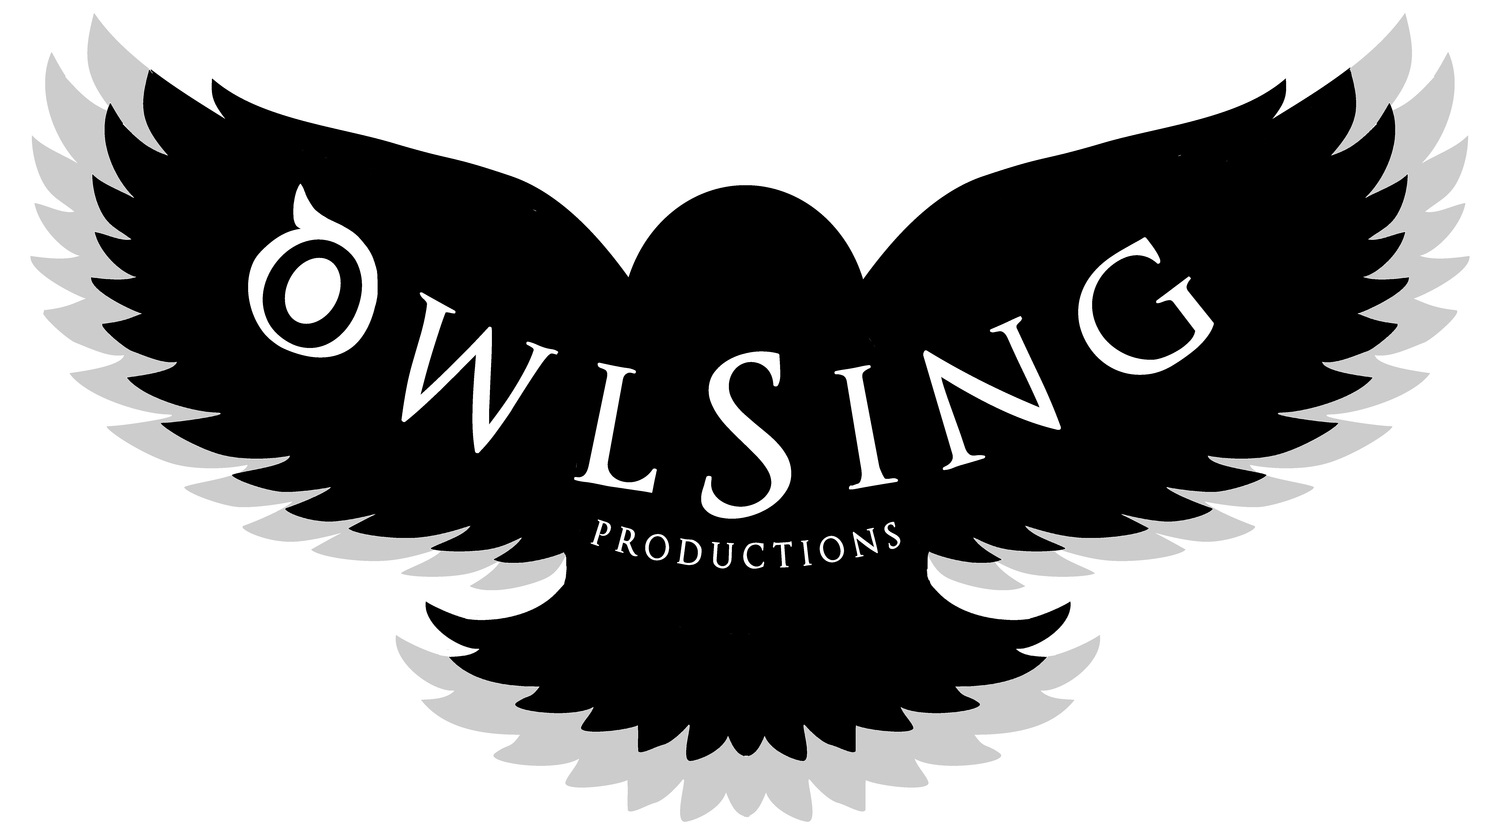 Owlsing Productions